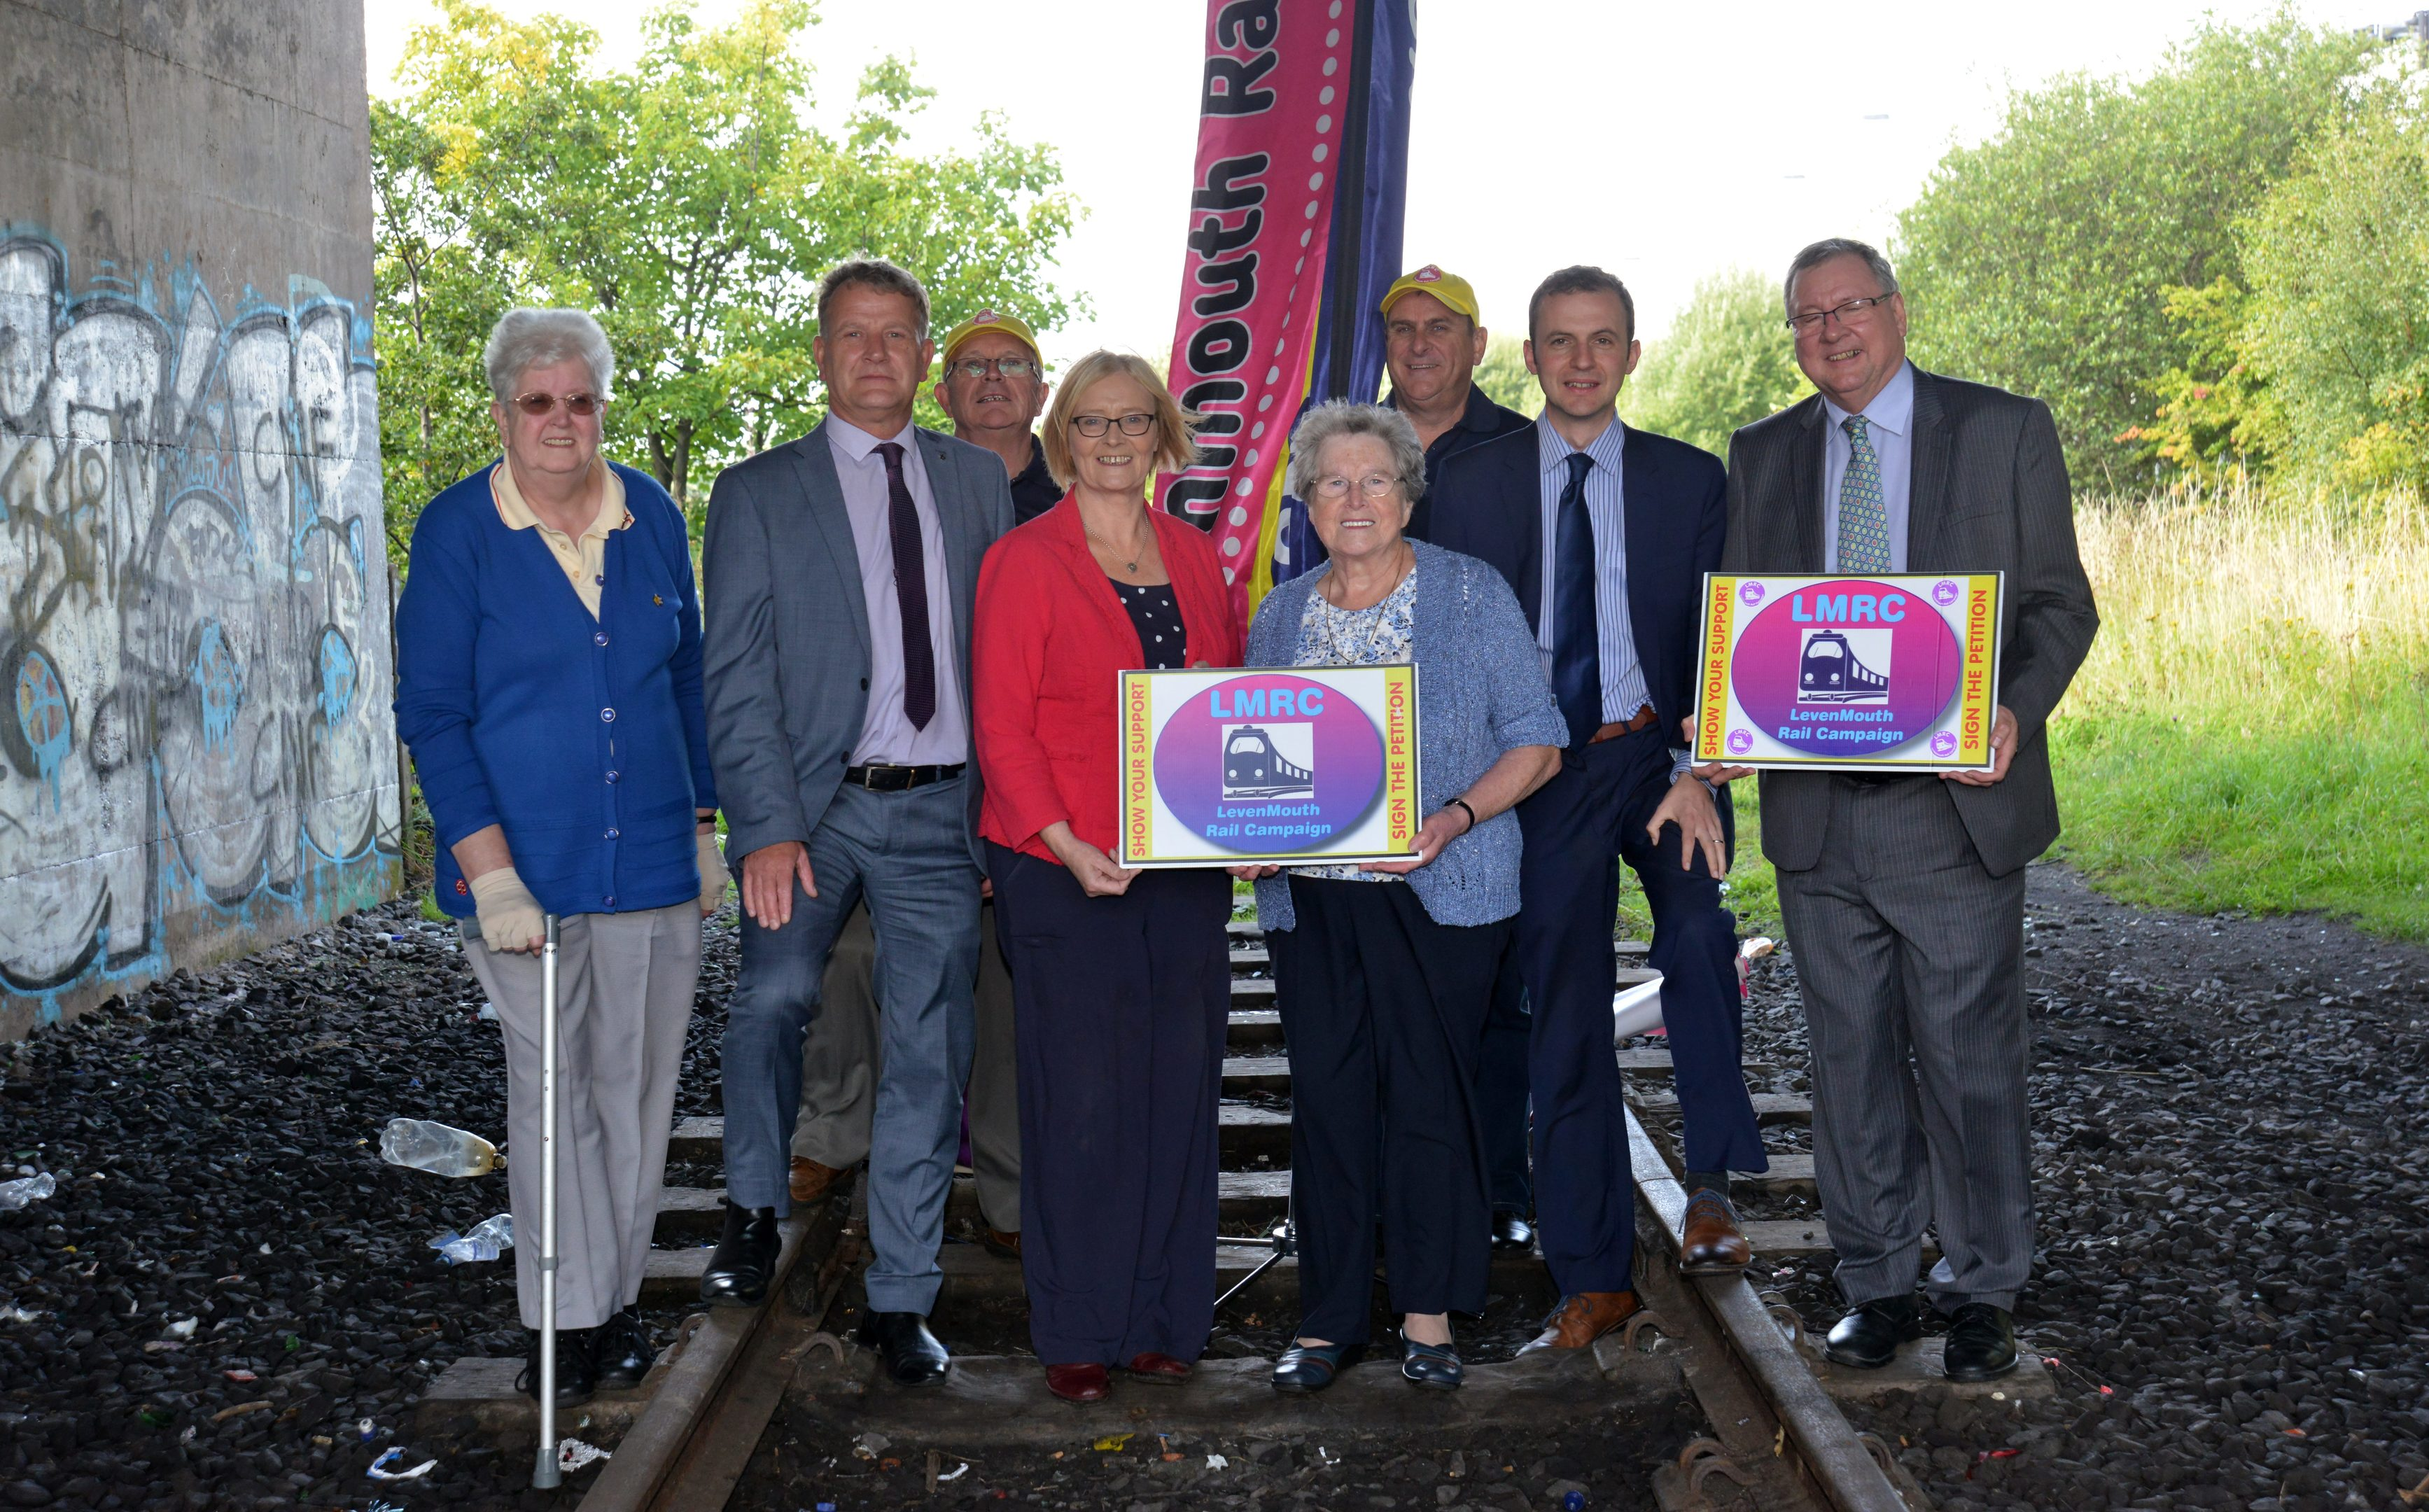 Campaigners who have been calling for a rail link